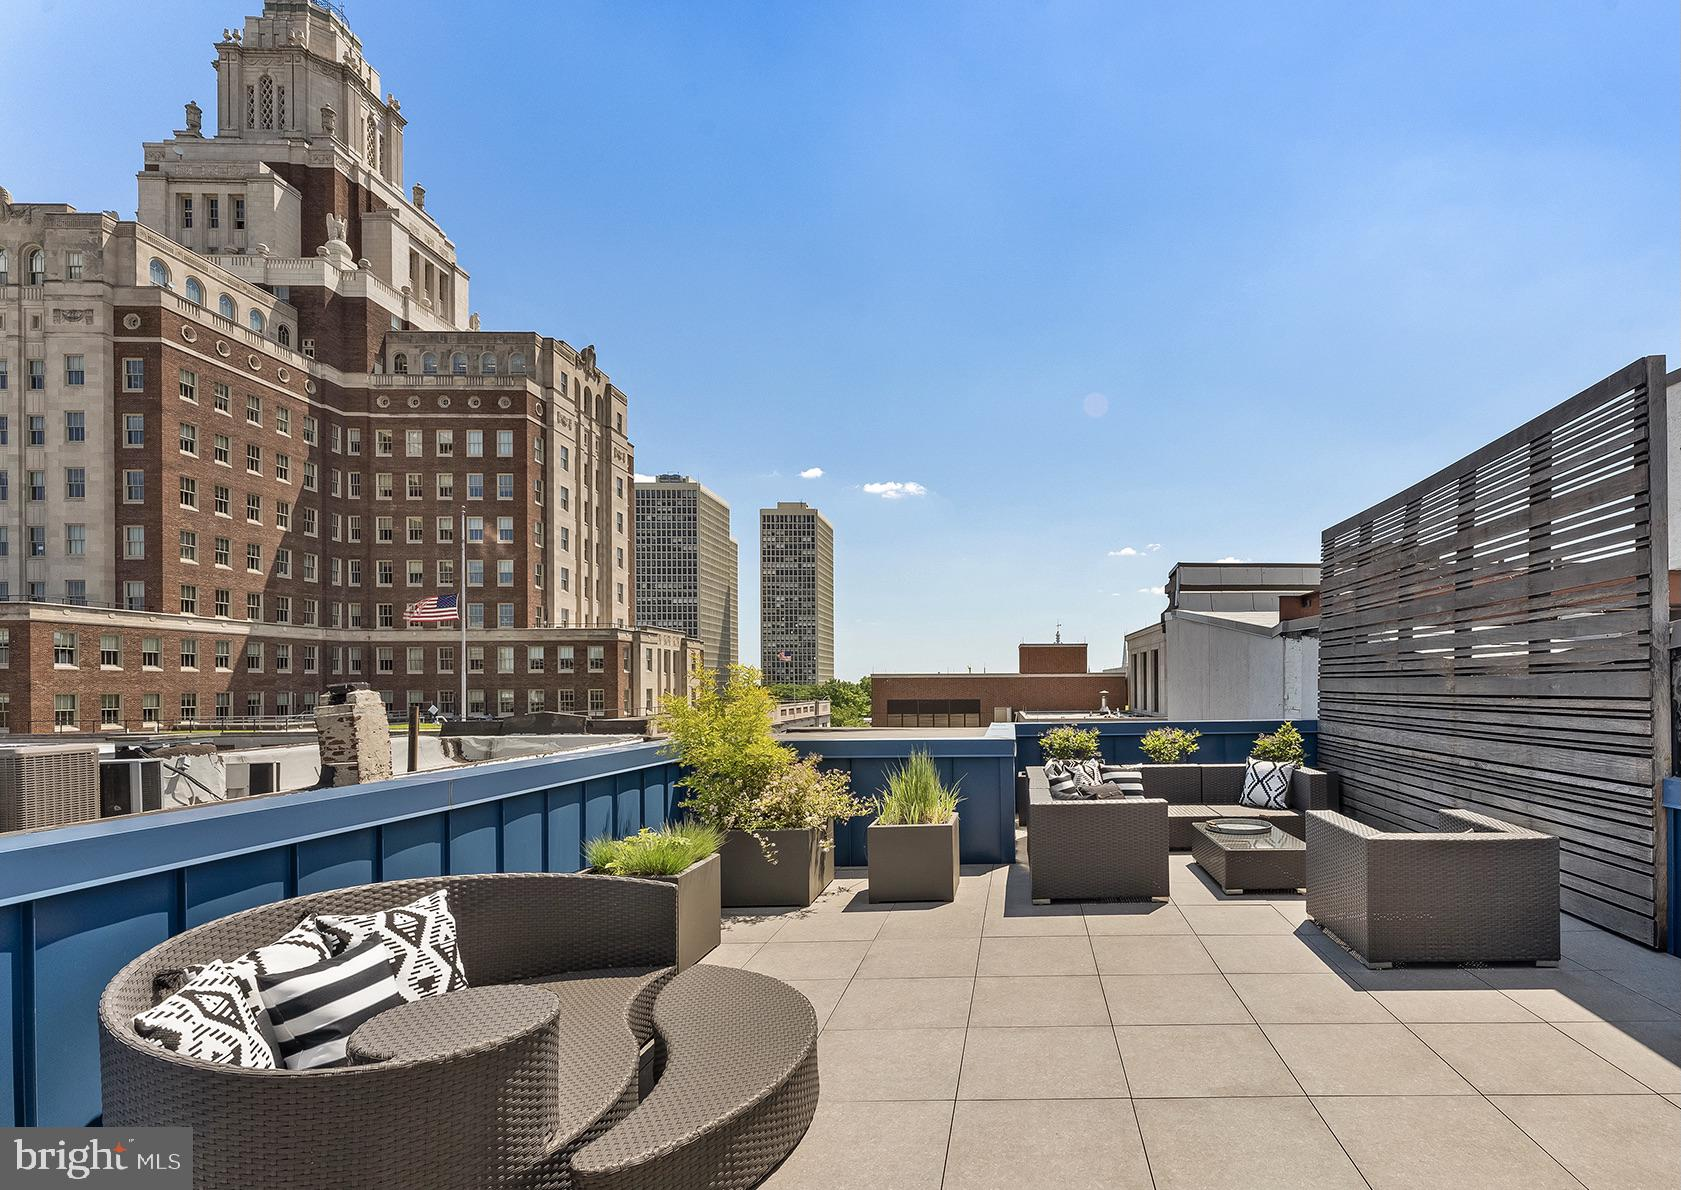 Located in the heart of Old City, this beautiful, quiet bi-level Penthouse occupies the 5th and 6th floors of a discreet luxury condominium building with two large outdoor decks. Enter this custom residence via elevator opening directly into the foyer of the home. Stepping out of the foyer into the entertaining spaces you will be greeted by incredible views of the American Revolution Museum. Featuring 10 foot ceilings, wide plank hardwood floors, and recessed LED lighting all throughout the home. The gourmet Scavolini kitchen includes a 48 inch Wolf gas range with infrared charbroil & griddle, Sub-Zero refrigerator, and a built-in Miele coffee maker. The large deck off the dining room offers a relaxing space to entertain outside with a built in Wolf grill and plenty of room for both casual seating and dining. The main living floor also features a powder room, two guest suites with their own ensuite private bathrooms, and a washer/dryer for the two guest bedrooms to use. Two additional deeded storage closets can be accessed from this floor. Continuing up the wood and glass framed staircase, the entire second floor encompasses the primary suite. This expansive bedroom features a large walk-in closet with built-in cabinets, its own separate washer/dryer, steam shower, and expansive roof deck. Additional features include parking paid for by the owner for 1 year and the remainder of the tax abatement ending 12/31/2023. Enjoy a lifestyle of complete privacy, comfort and convenience with easy access to 676 and 95, and steps away from the best restaurants Old City and Society Hill have to offer.